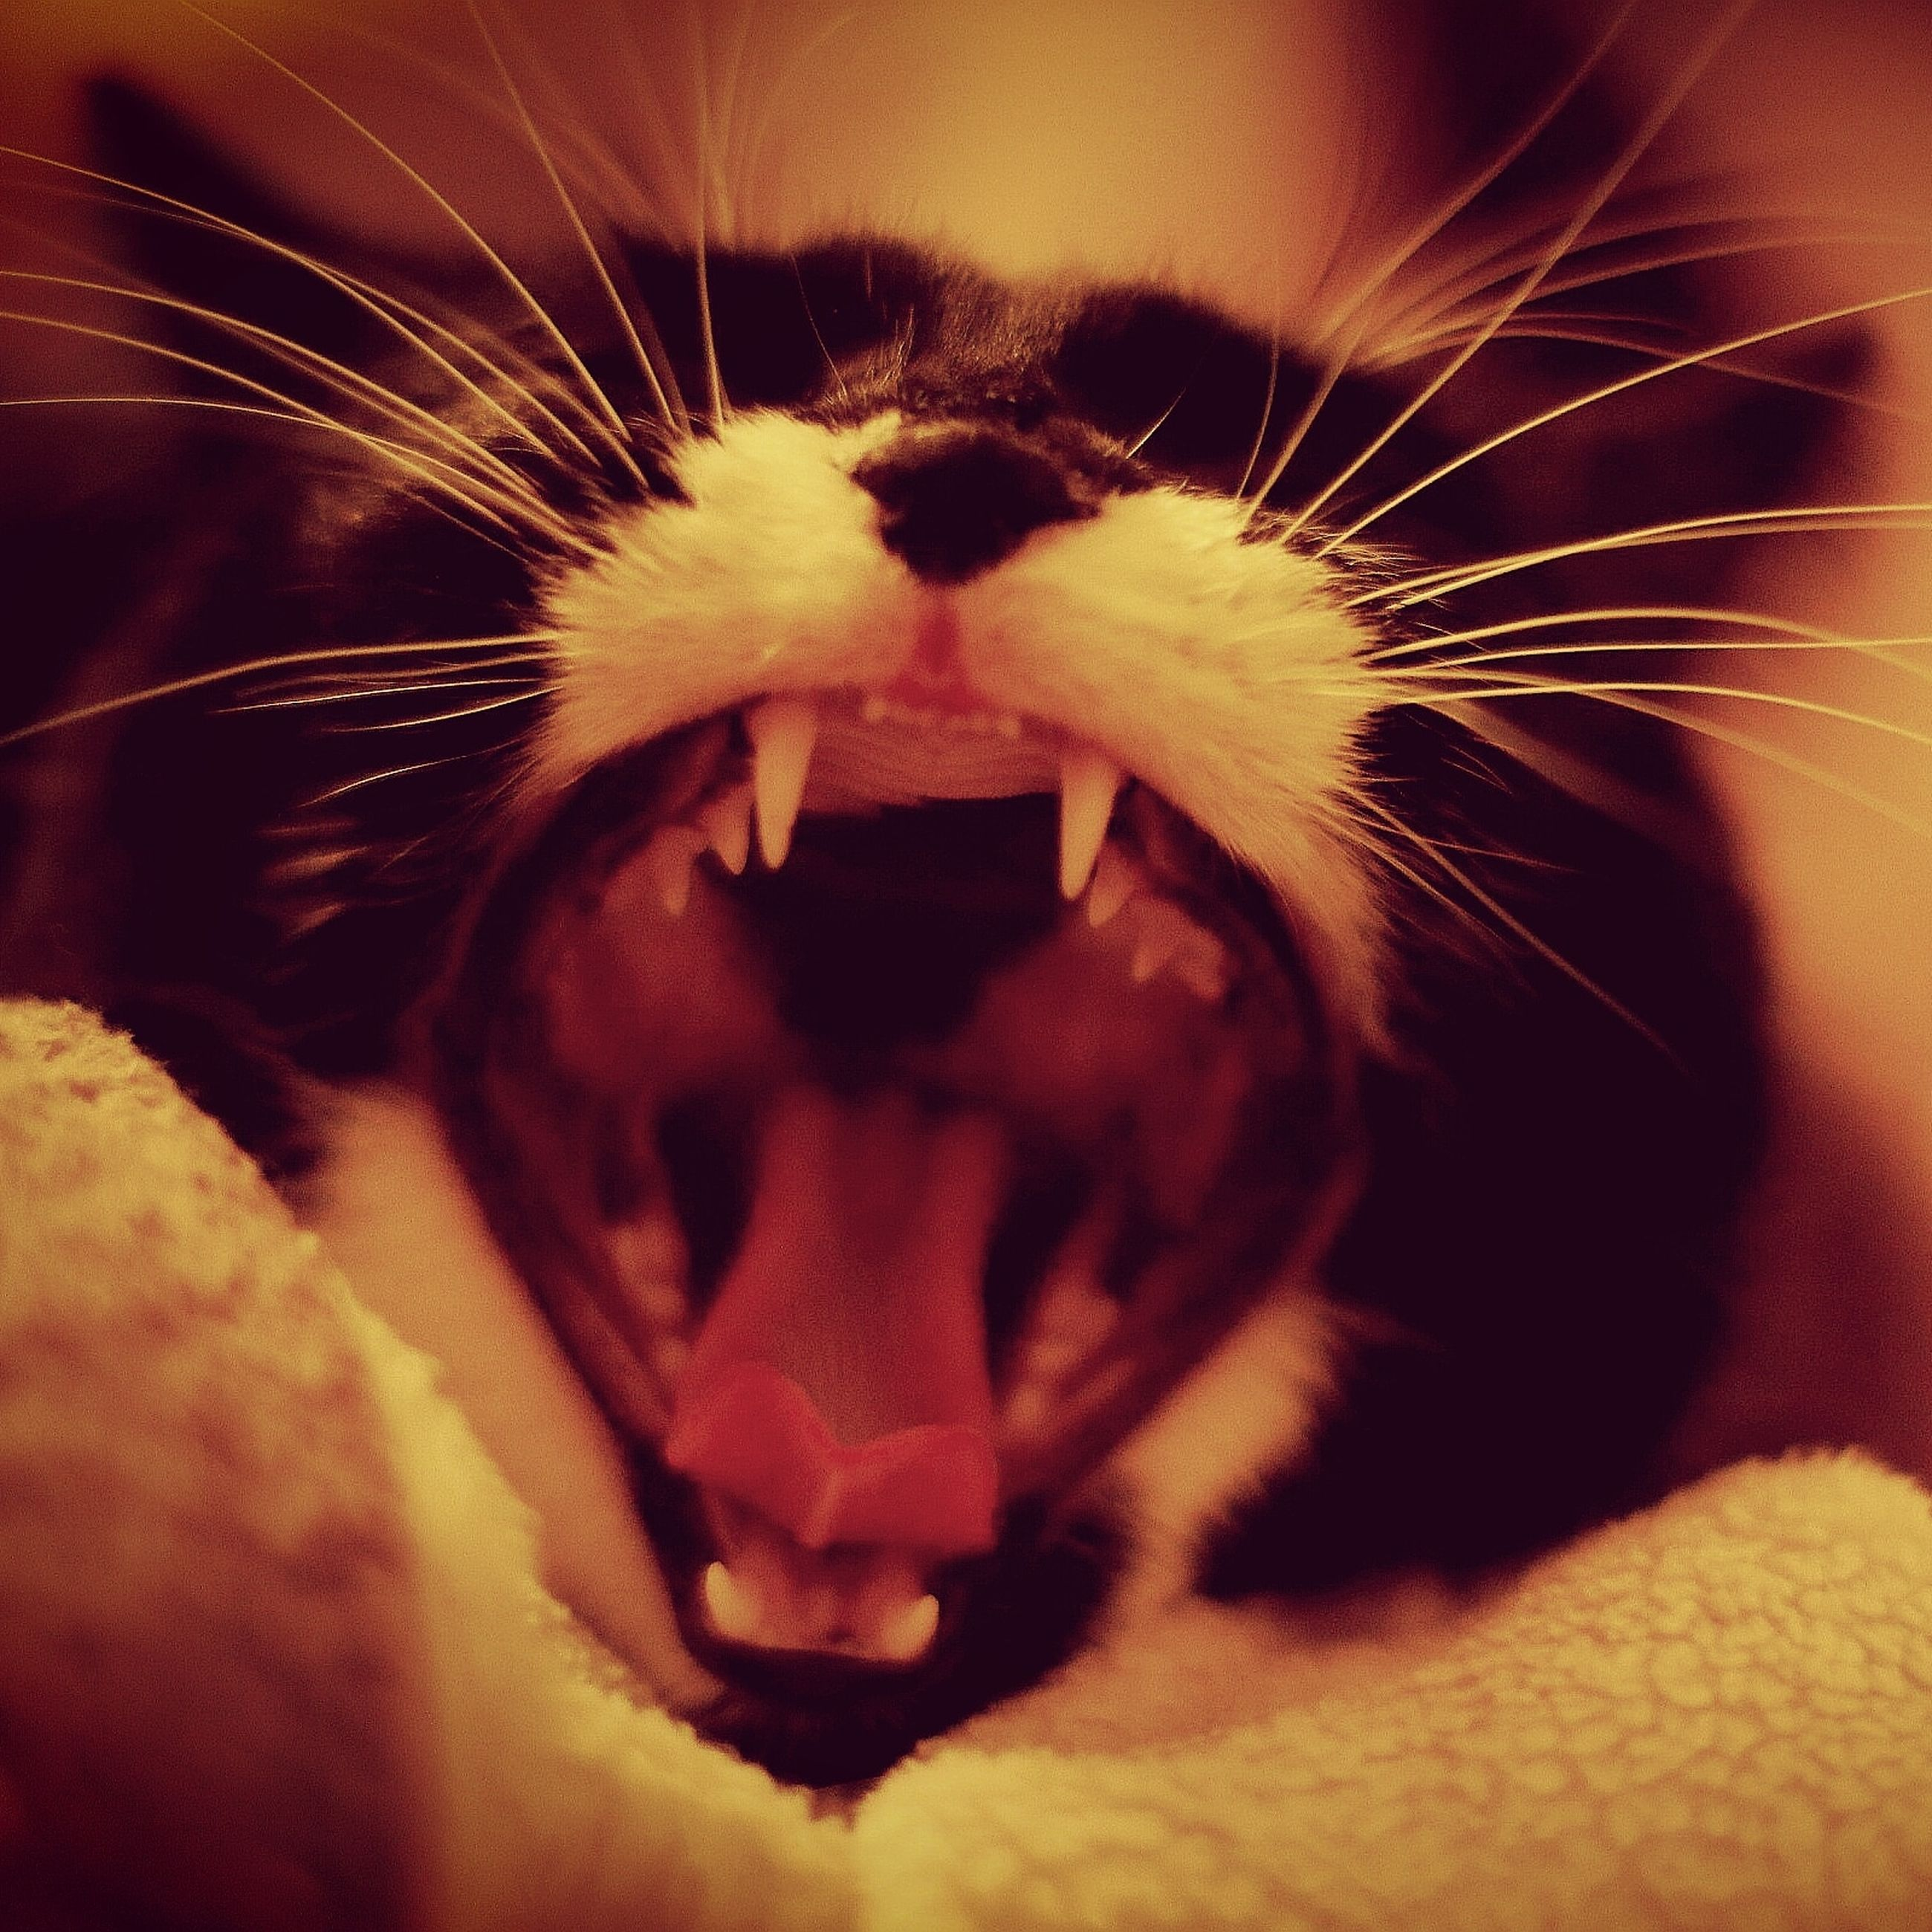 one animal, animal themes, animal, cat, domestic, pets, domestic animals, feline, mammal, mouth open, domestic cat, close-up, mouth, animal body part, vertebrate, whisker, yawning, facial expression, no people, animal teeth, animal mouth, animal head, animal nose, snout